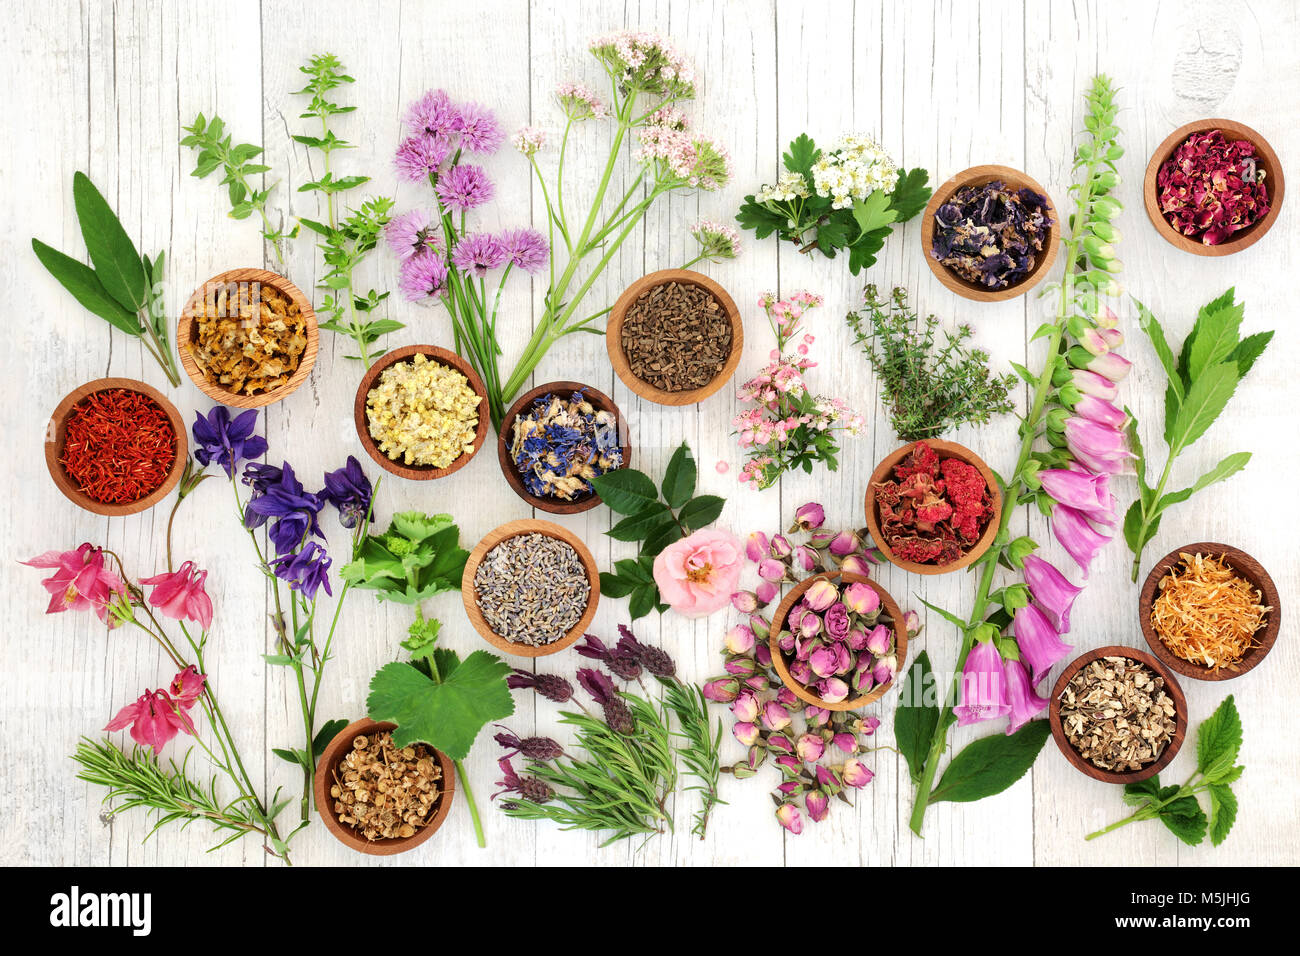 Herbs and flowers used in natural herbal medicine on rustic white wood background. - Stock Image